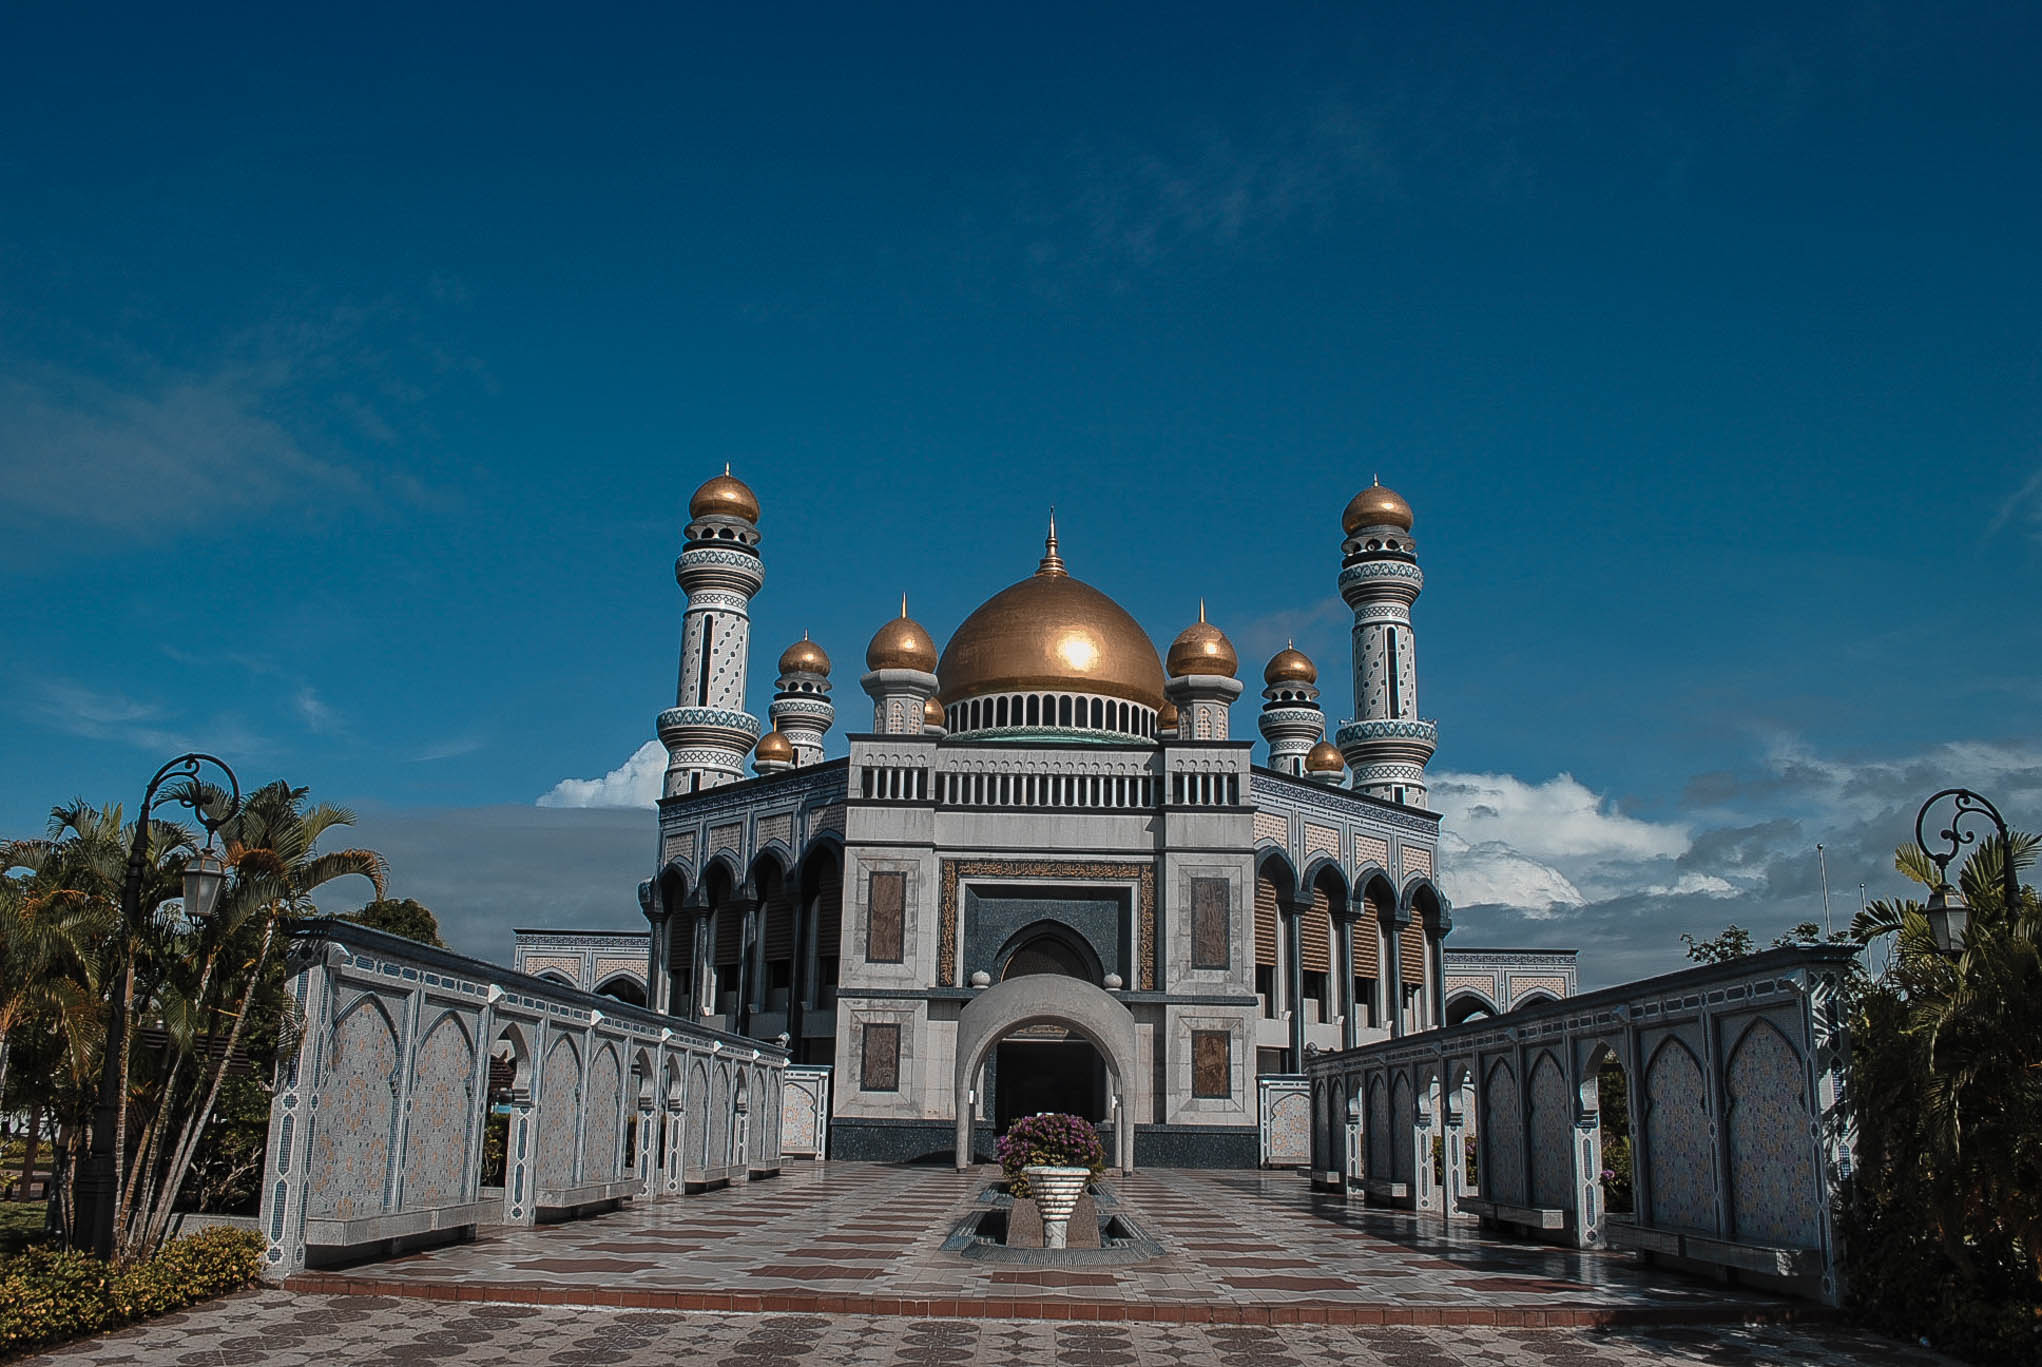 BRUNEI TOP TOURIST ATTRACTIONS